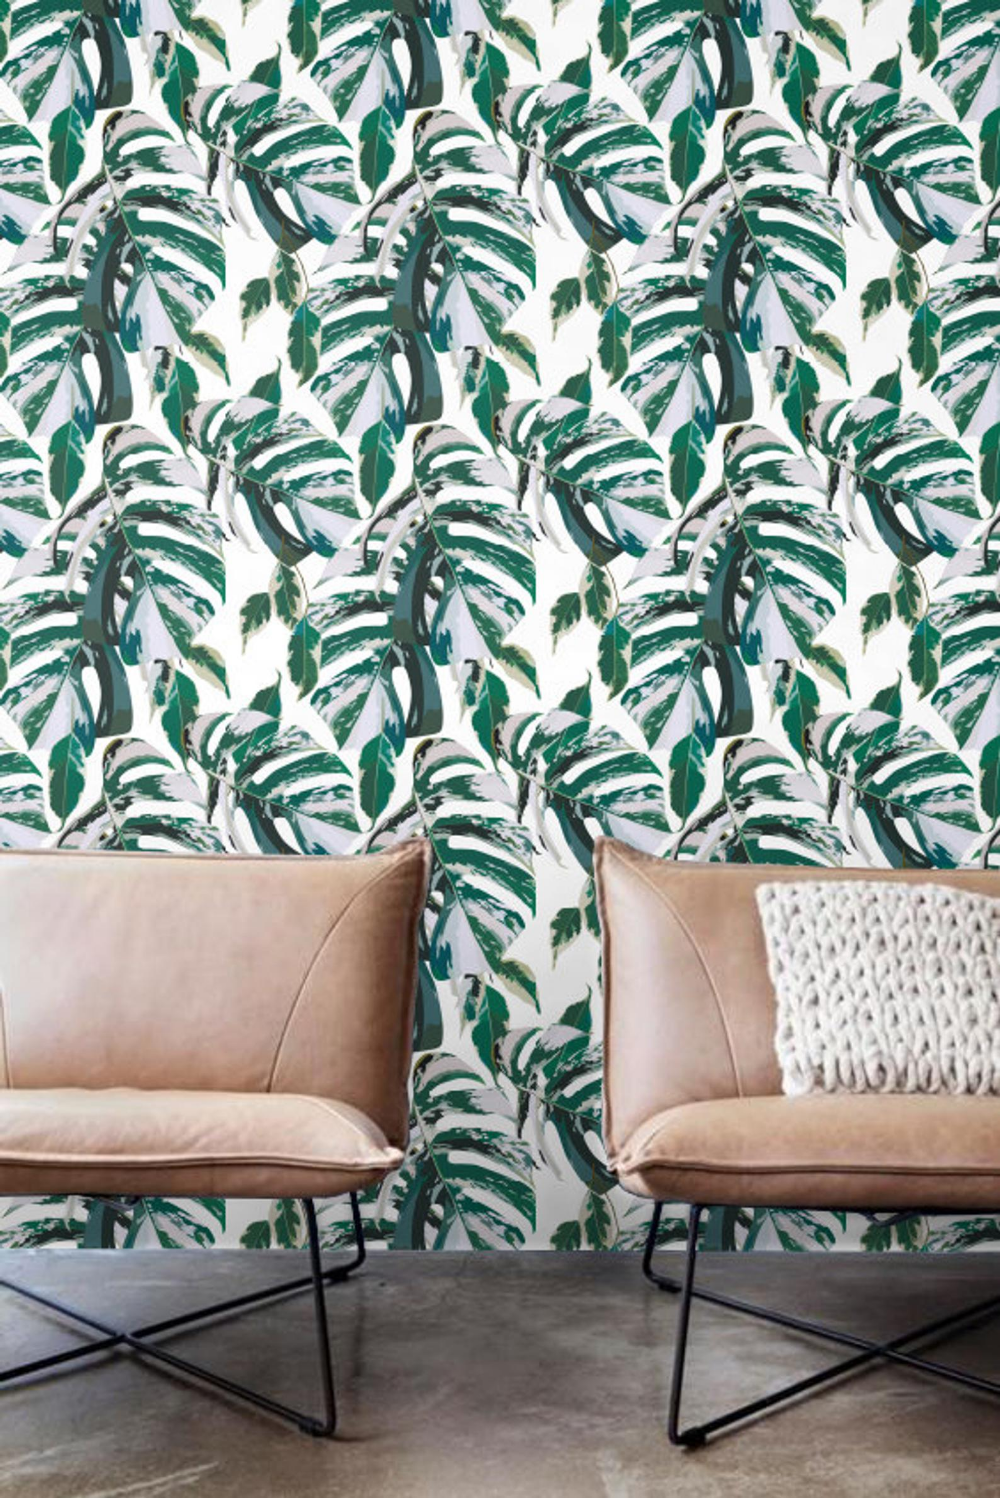 Marble monstera Wallpaper, Removable Wallpaper, Self